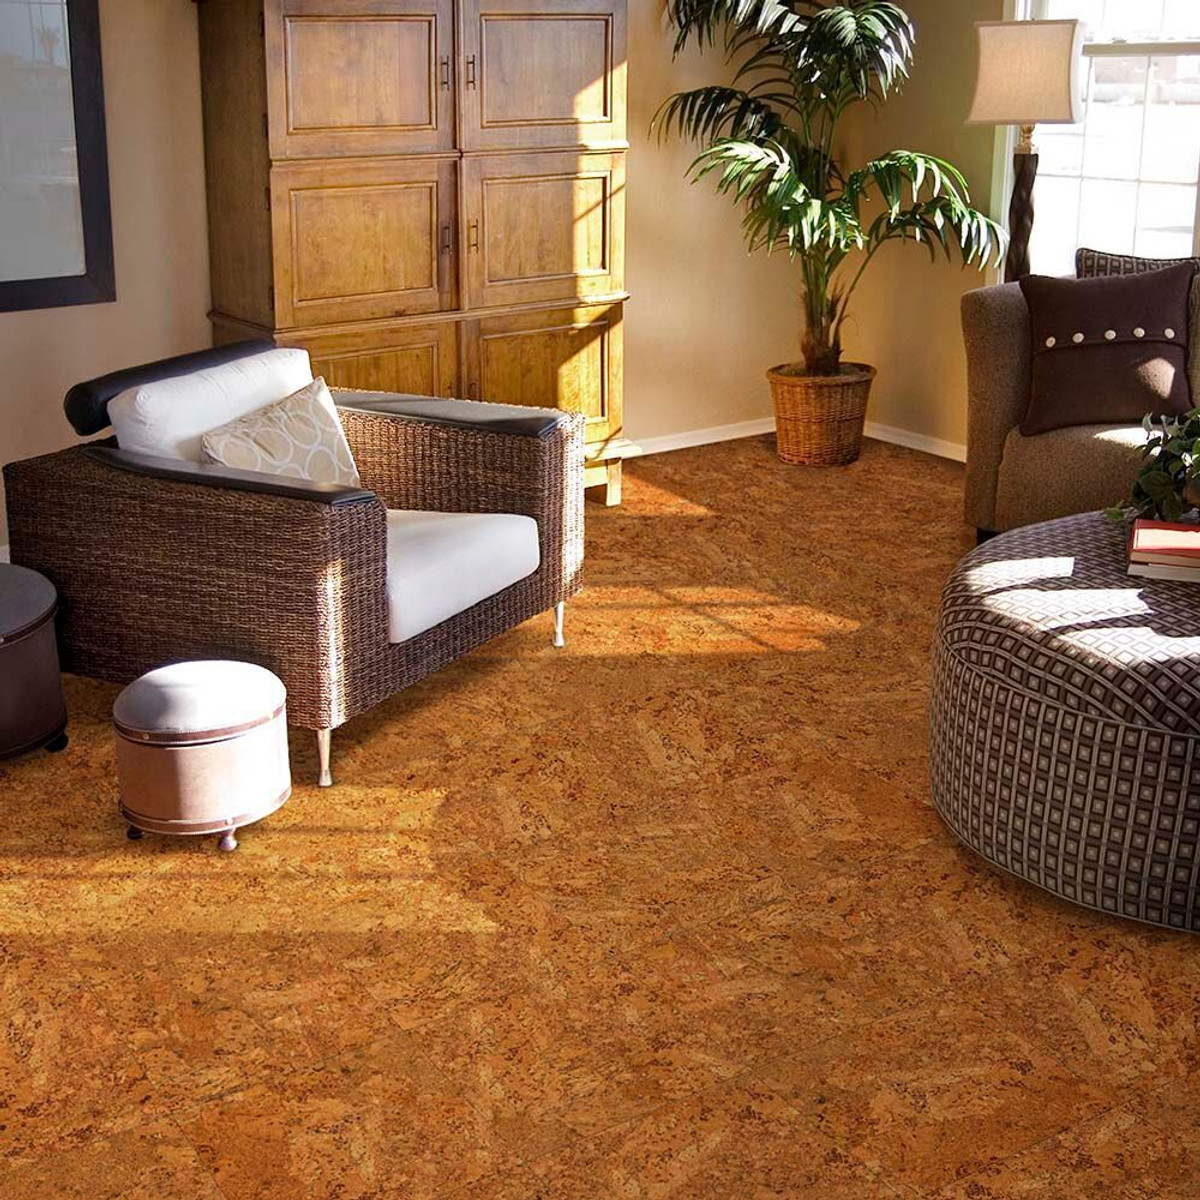 tile diamond plate perfection floor pattern p floors s interlocking of picture flexible